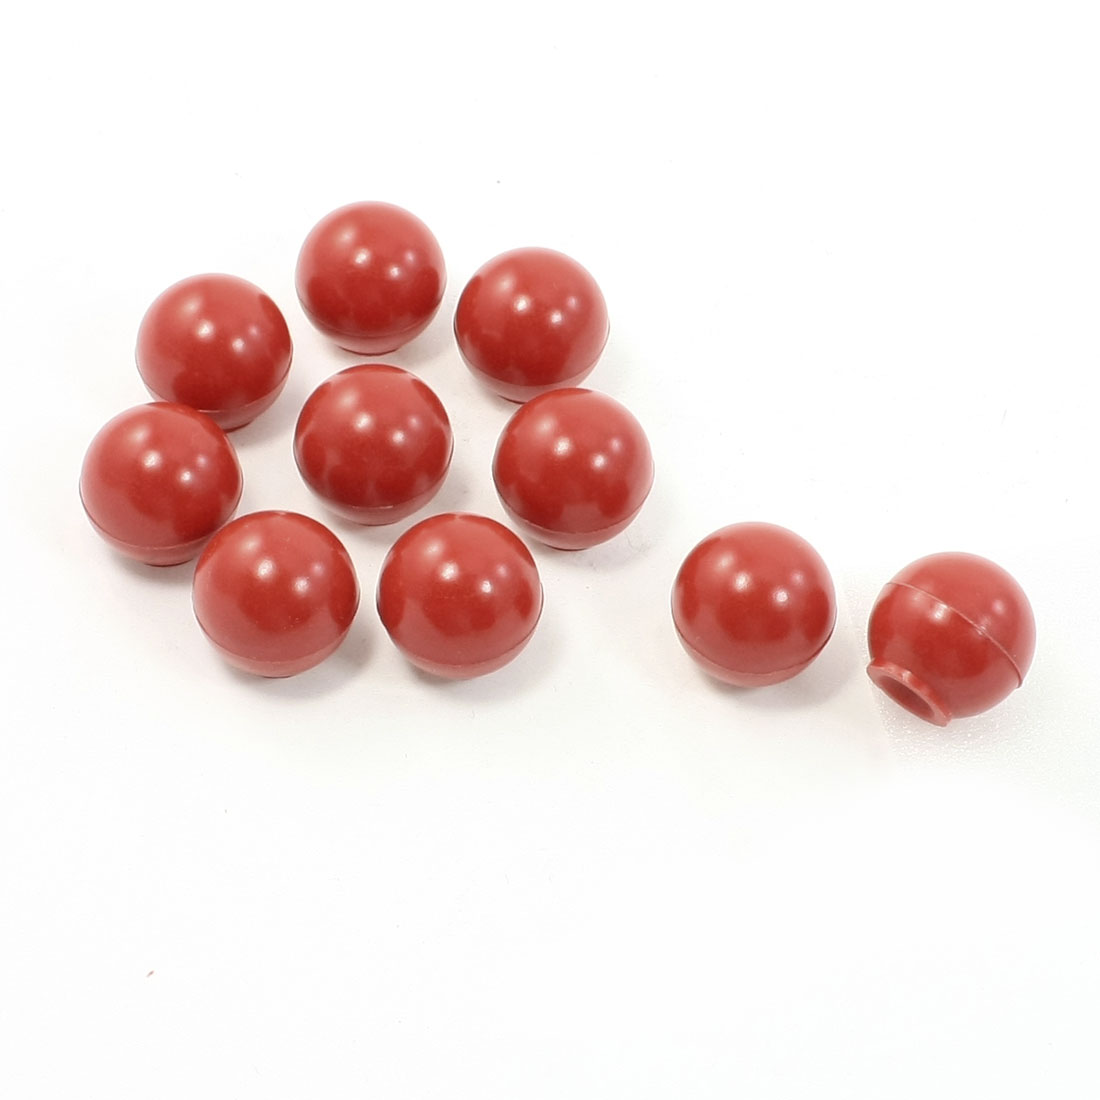 10 Pcs 28mm Dia 6mm Thread Plastic Ball Machine Handle Knob Replacement Red